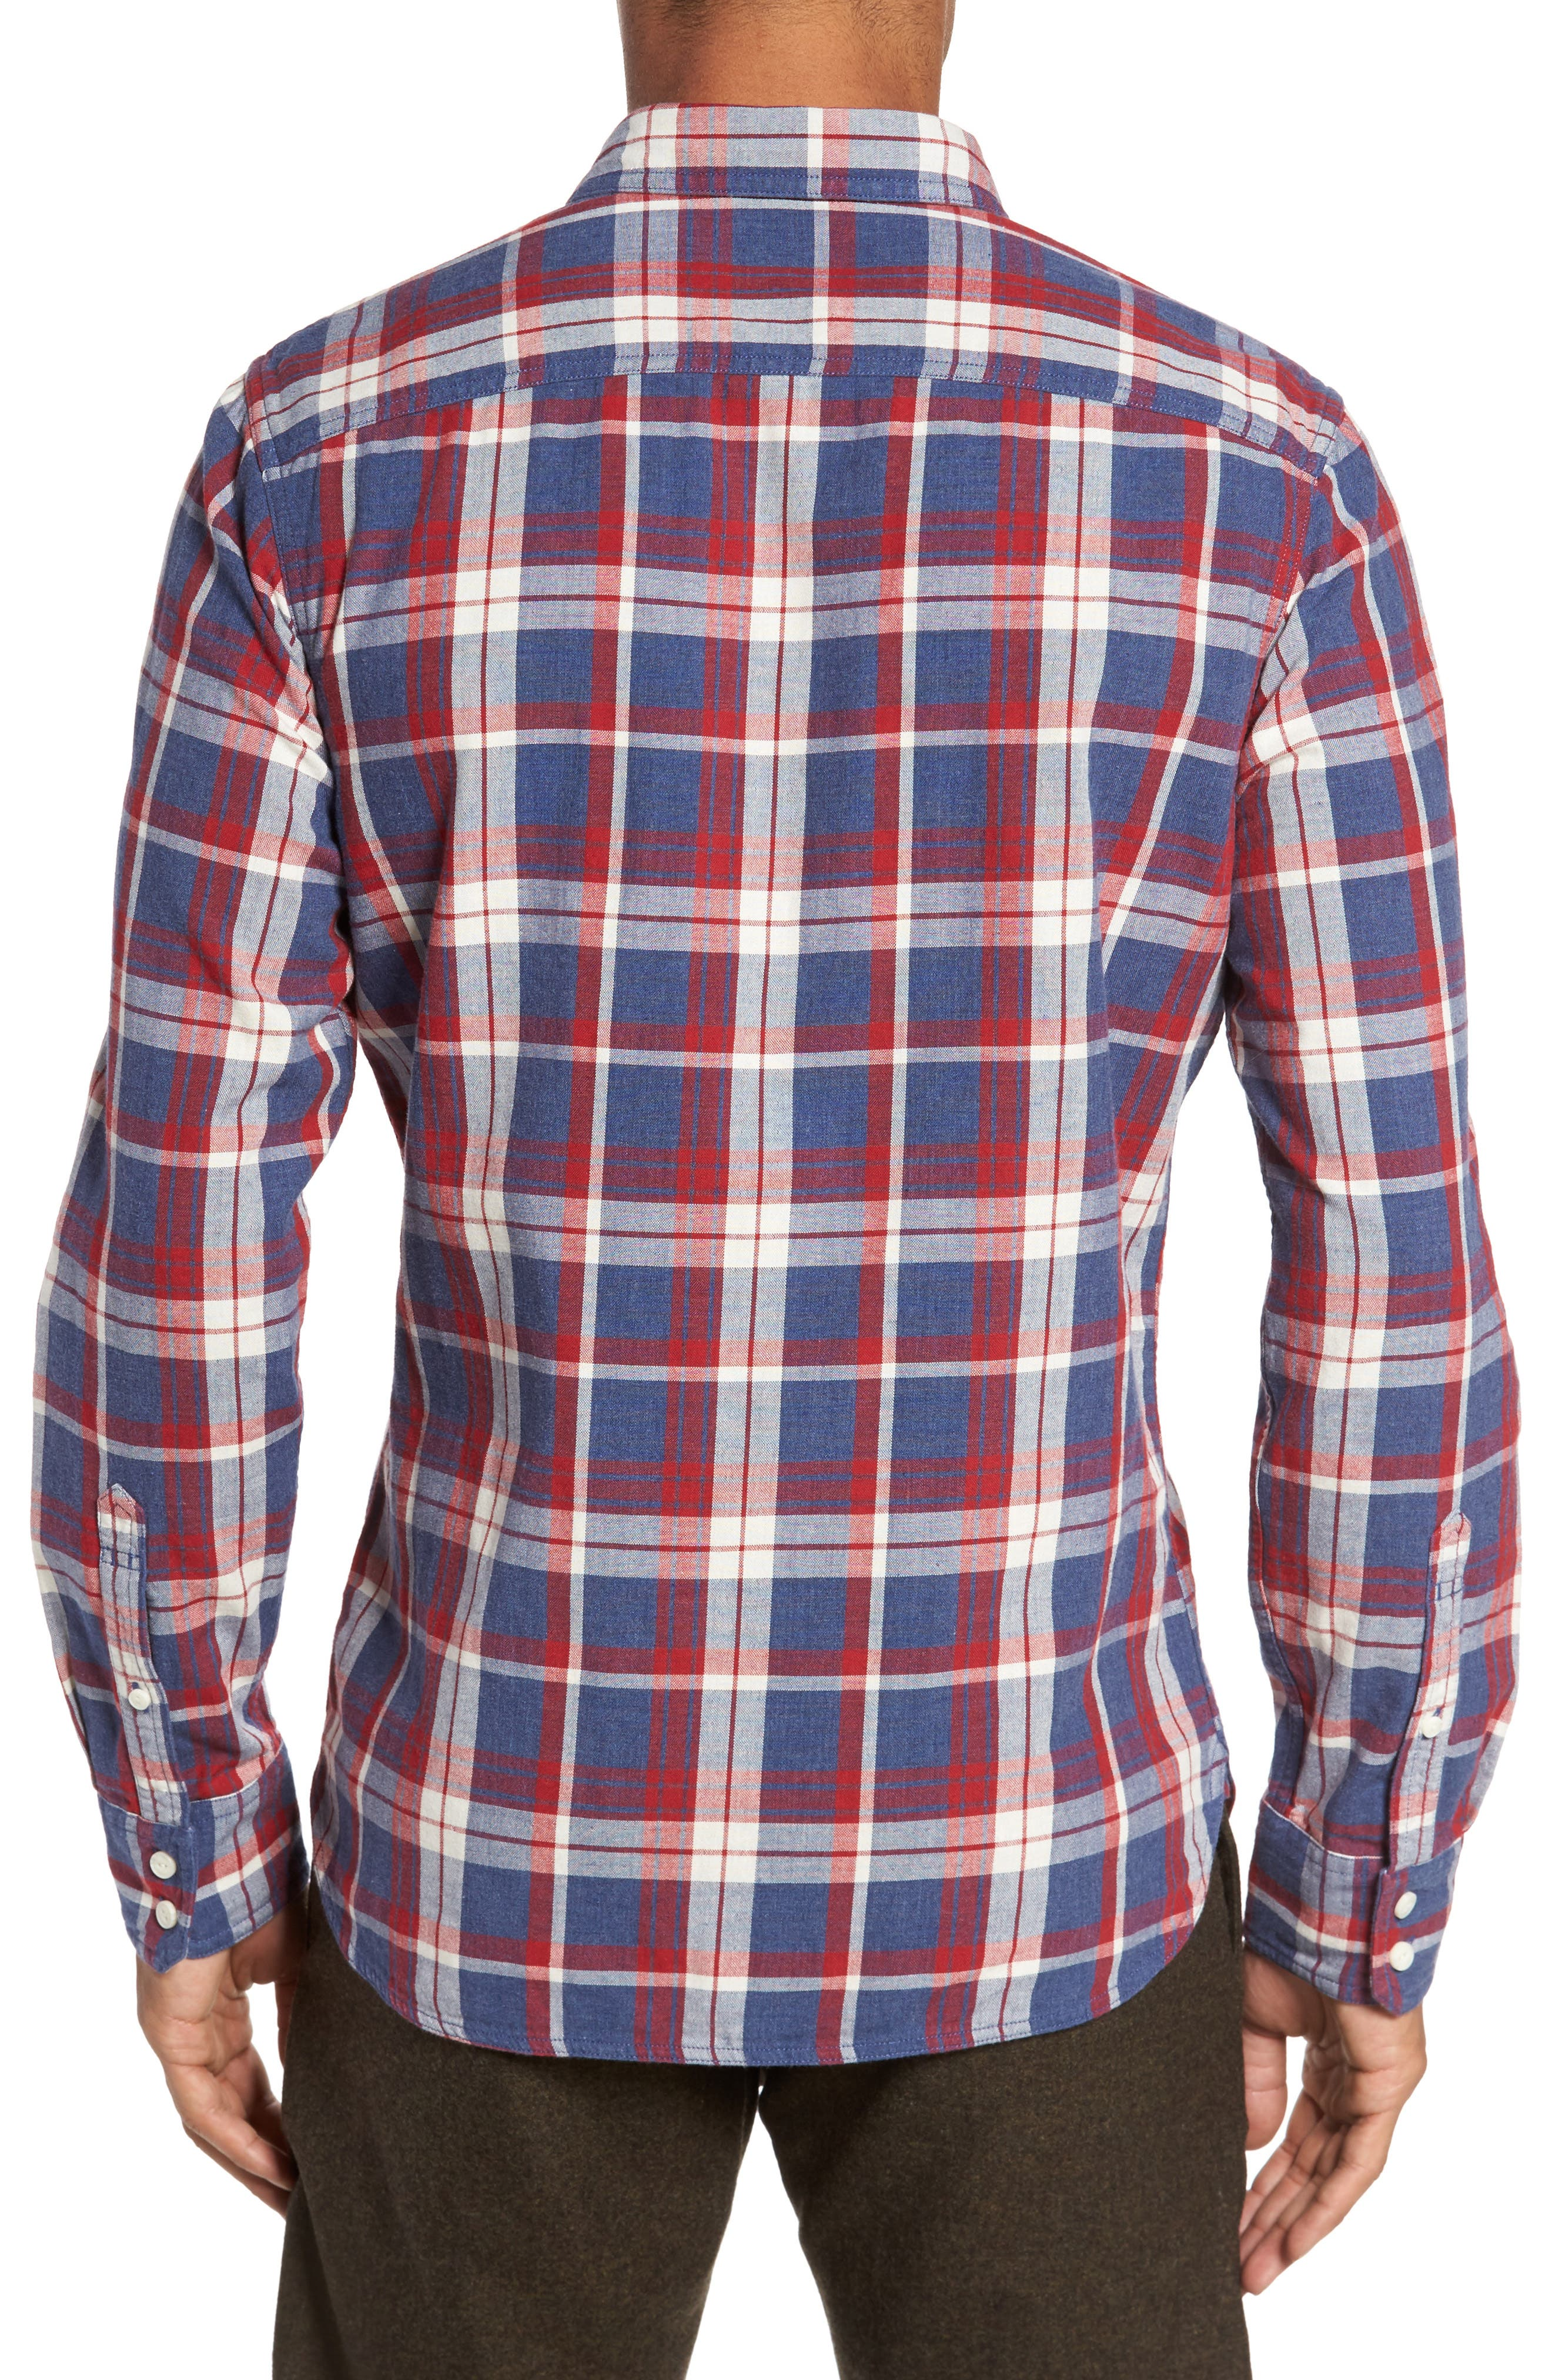 Trim Fit Workwear Duofold Plaid Sport Shirt,                             Alternate thumbnail 2, color,